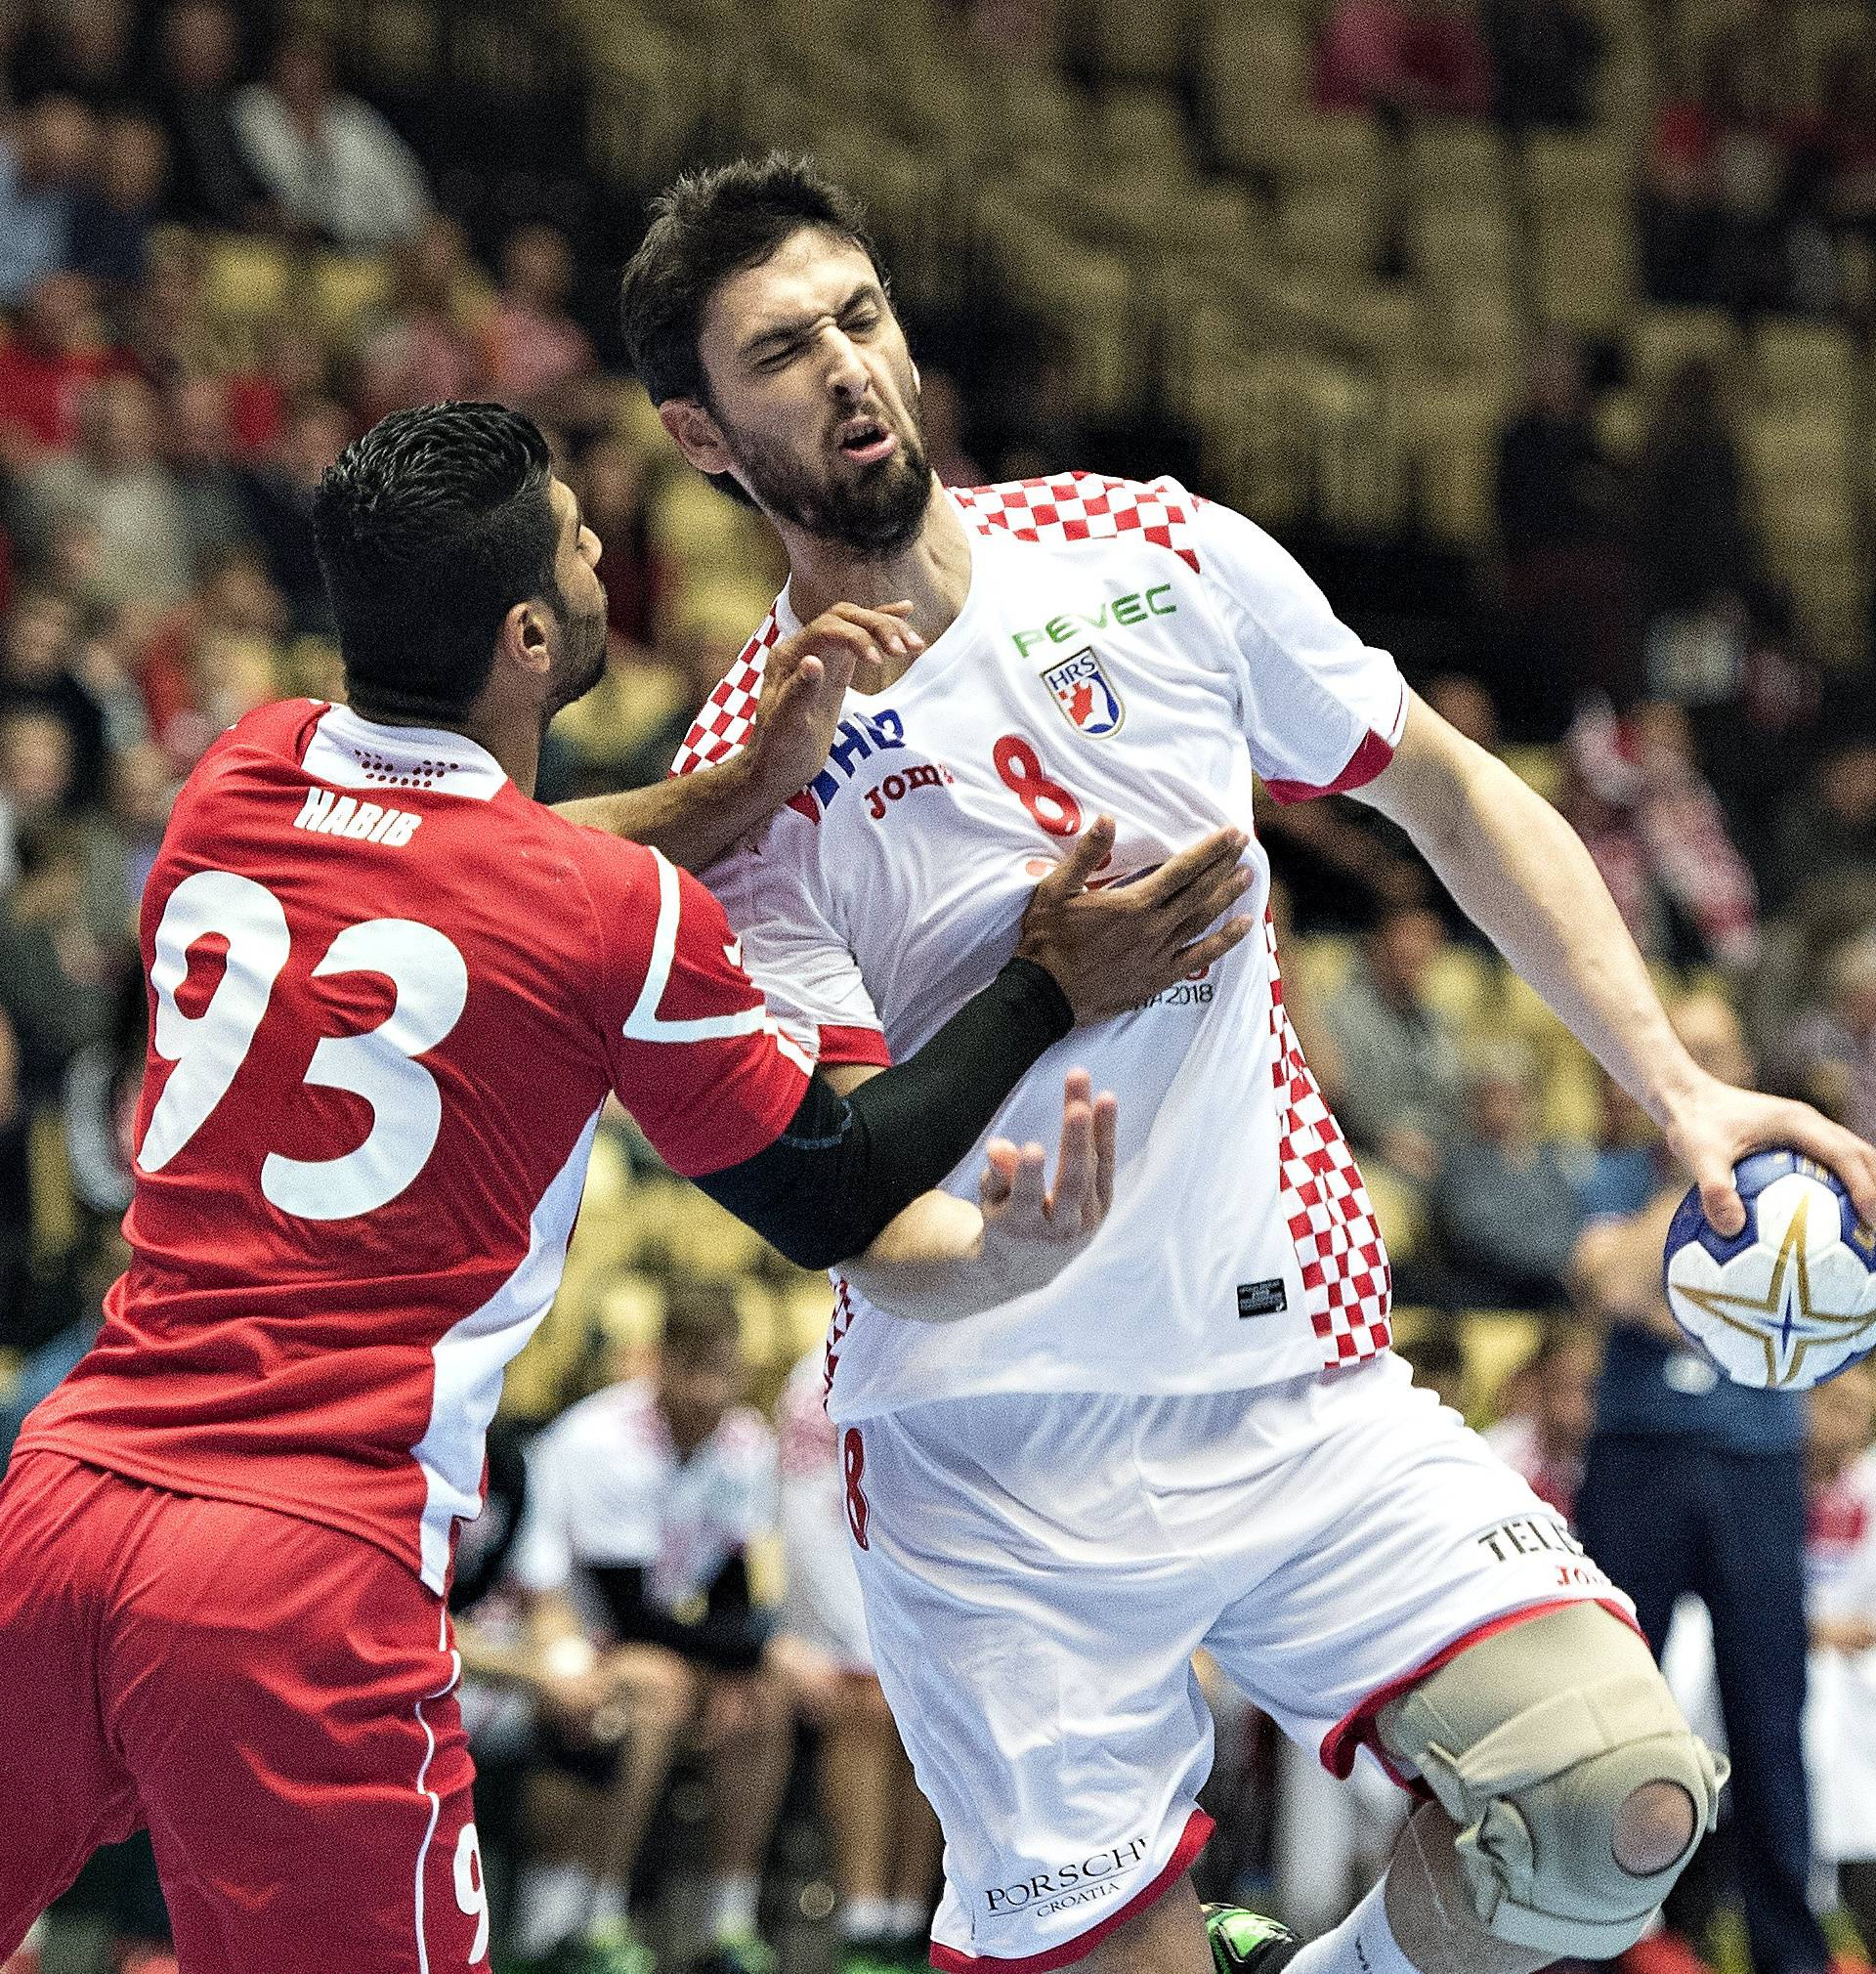 Habib Mohamed of Bahrain and Marko Kopljar of Croatia in action during their men's handball Olympic qualification match in Boxen